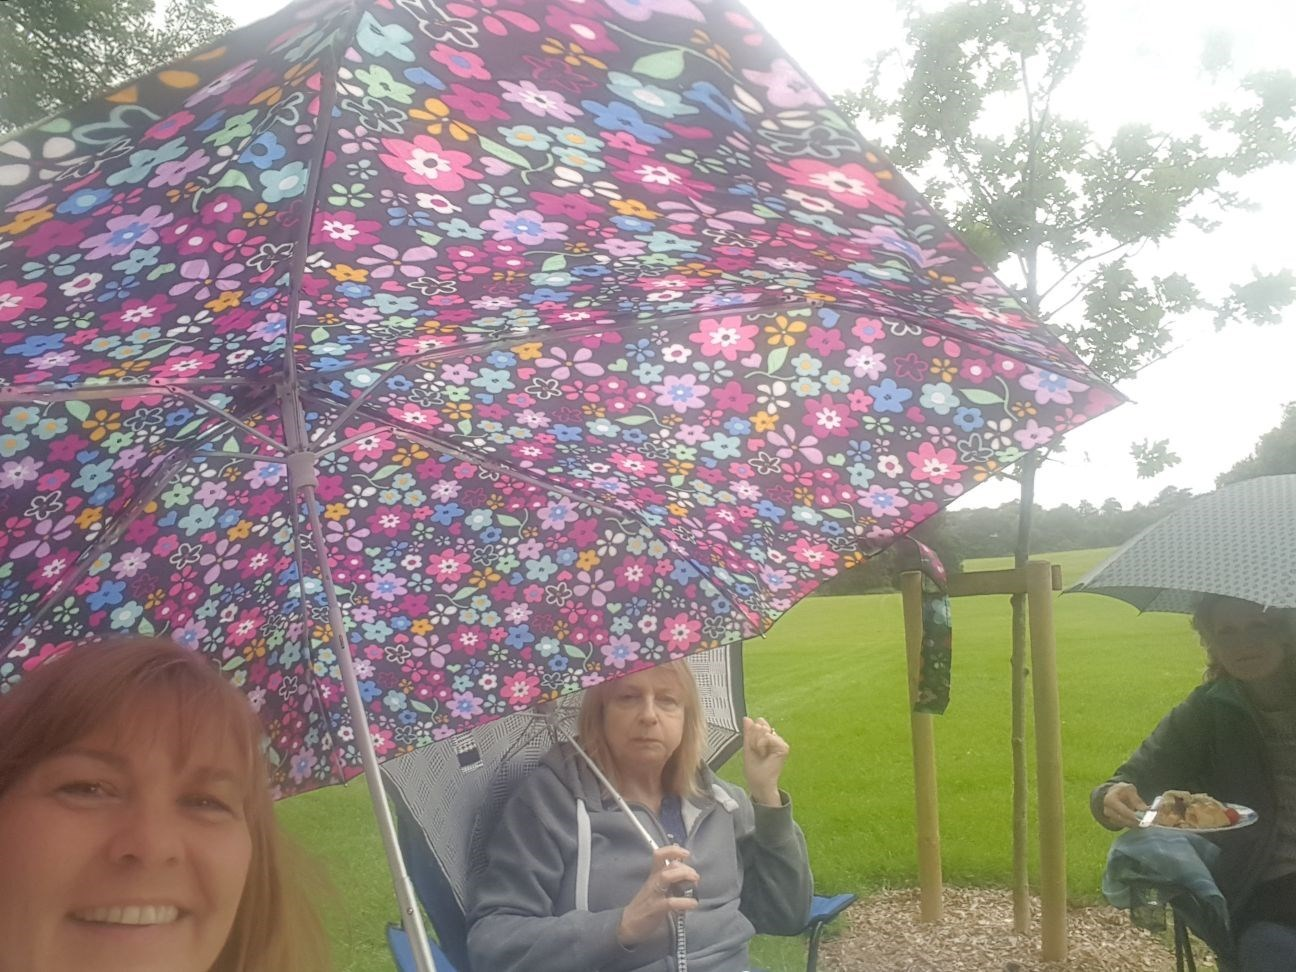 A dop of rain was not going to spoil our picnic at Hylands Park